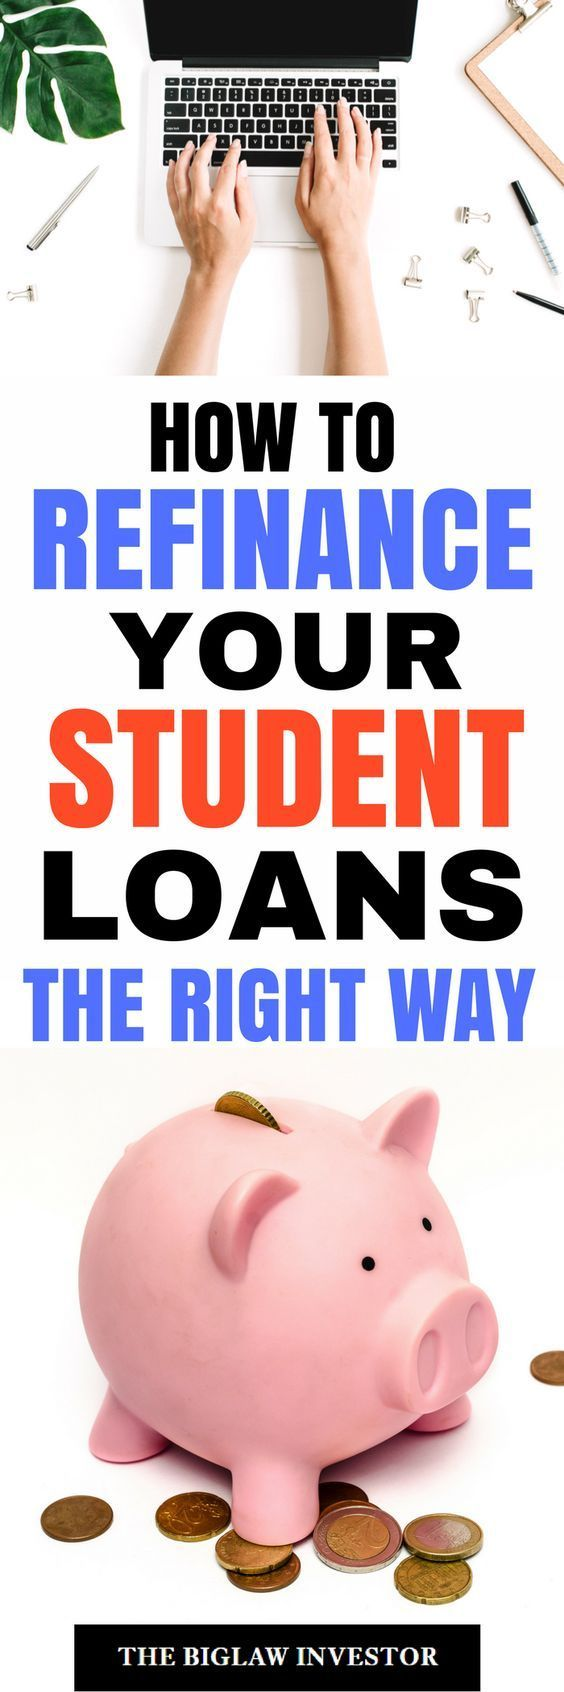 Stuck on refinancing? Learn how to refinance your student loan the right way once and for all! #refinancestudentloan #studentloan #collegedebt #payoffcollegeloans #payoffstudentloans #studentloandebt